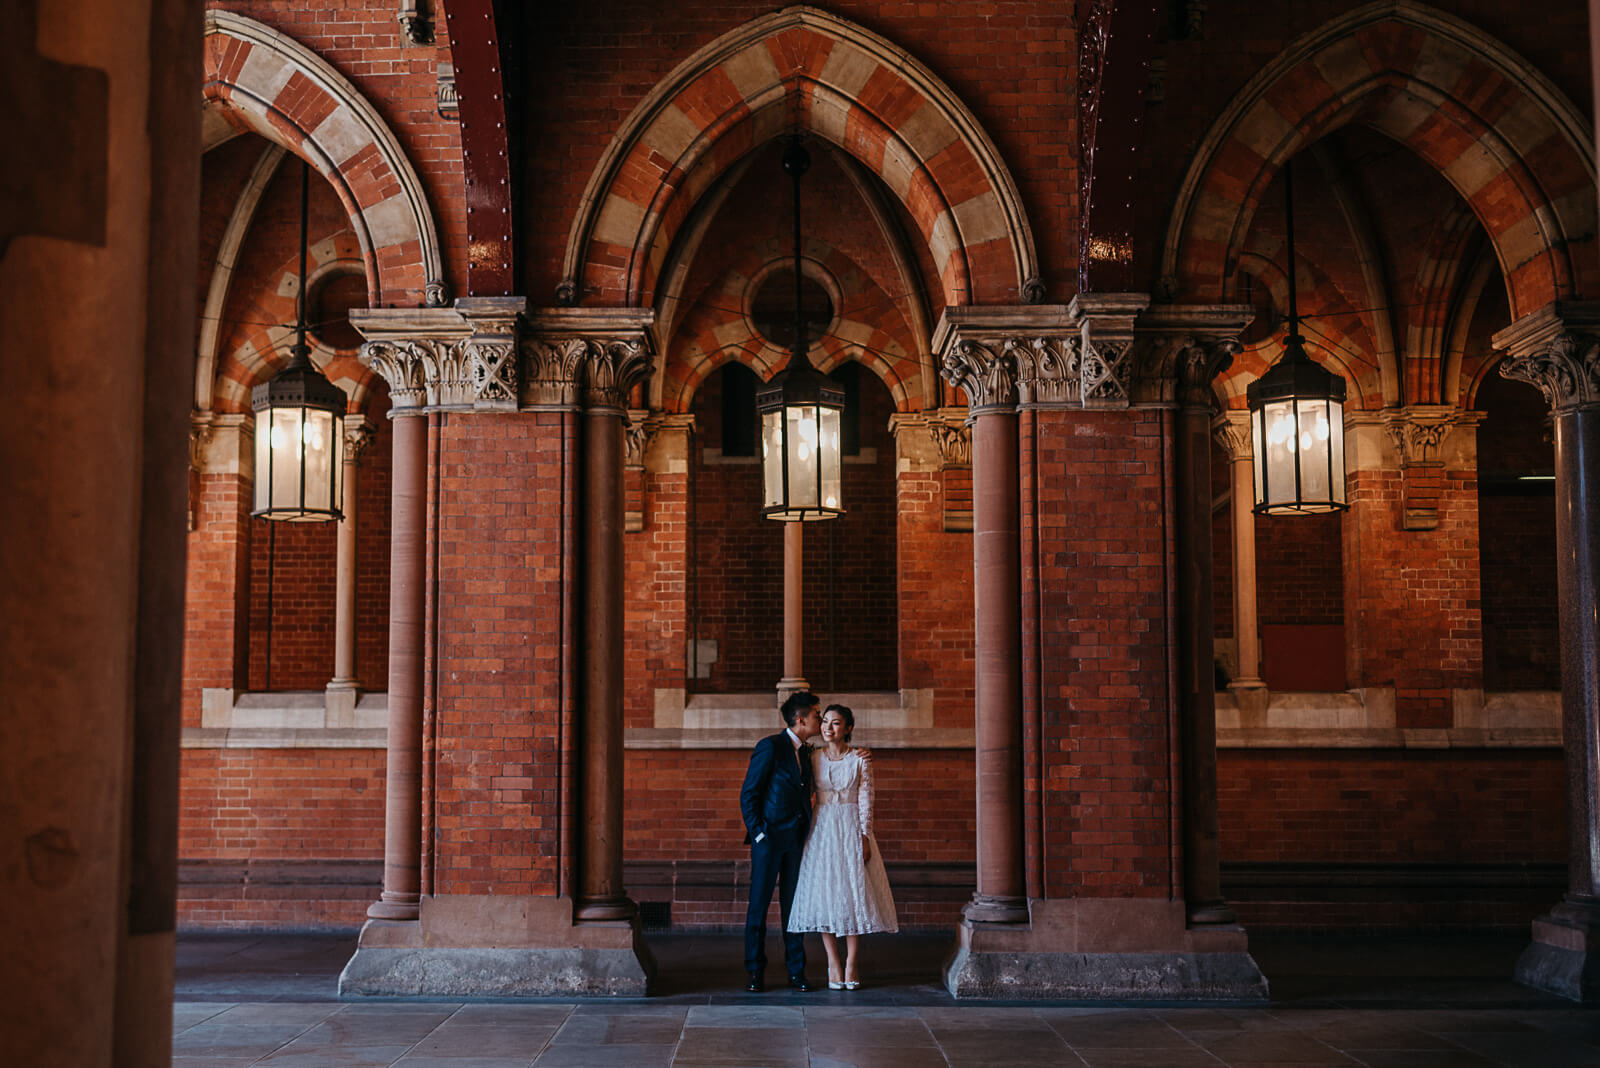 Bride and groom standing in arch way at St Pancras Station in London